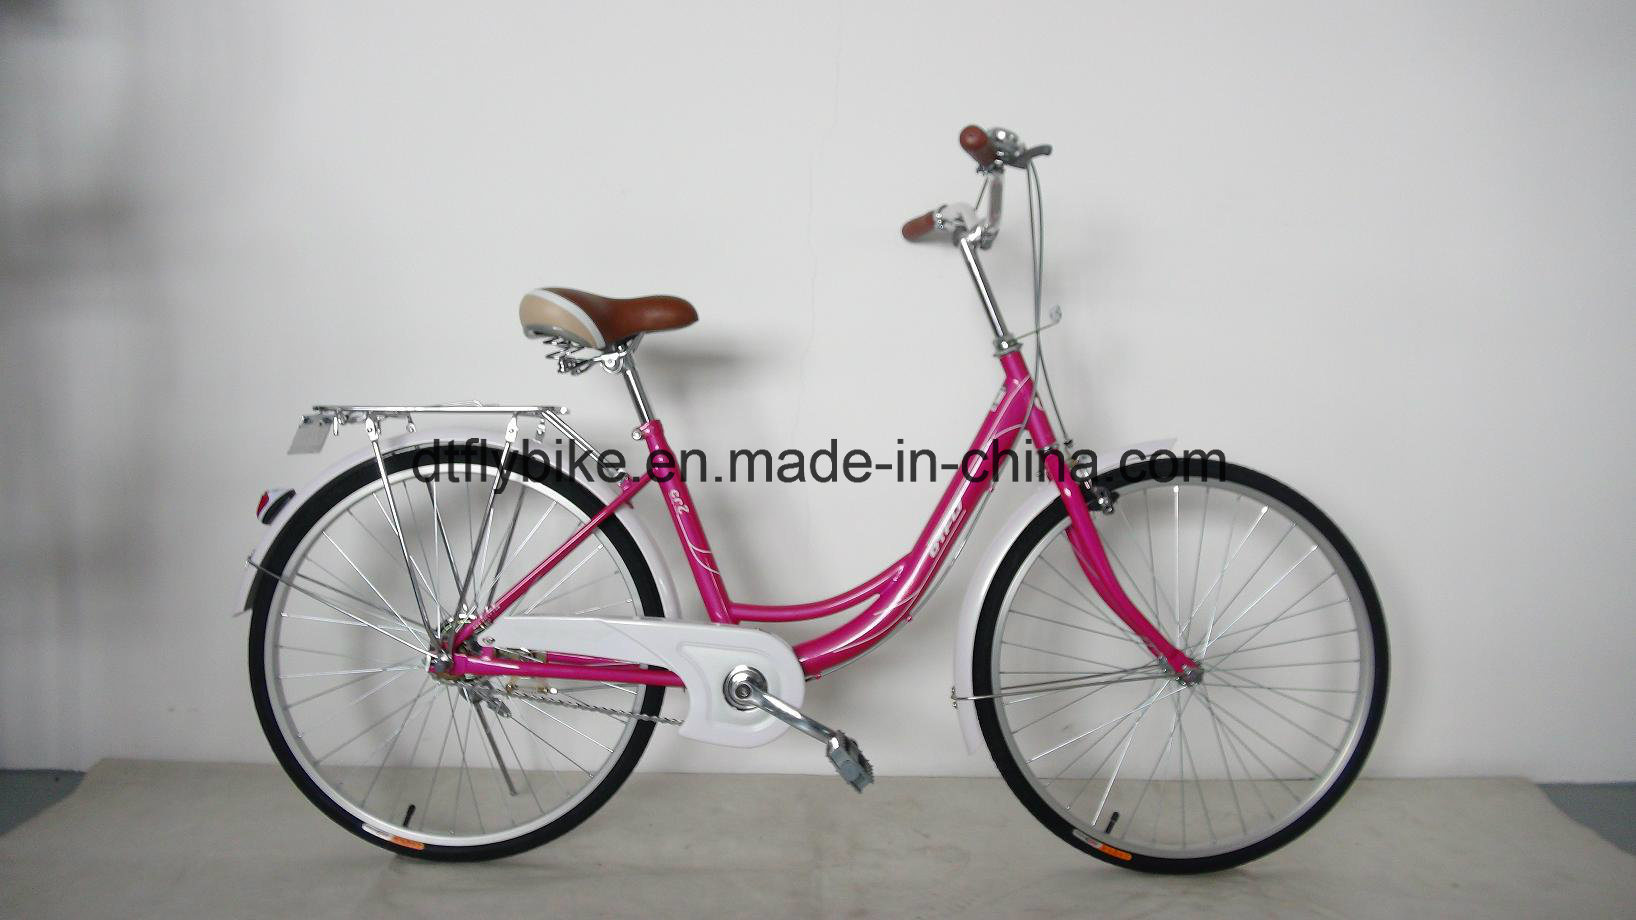 24&26inch City Bike, Lady Bike, Single Speed, Curise Bicycle